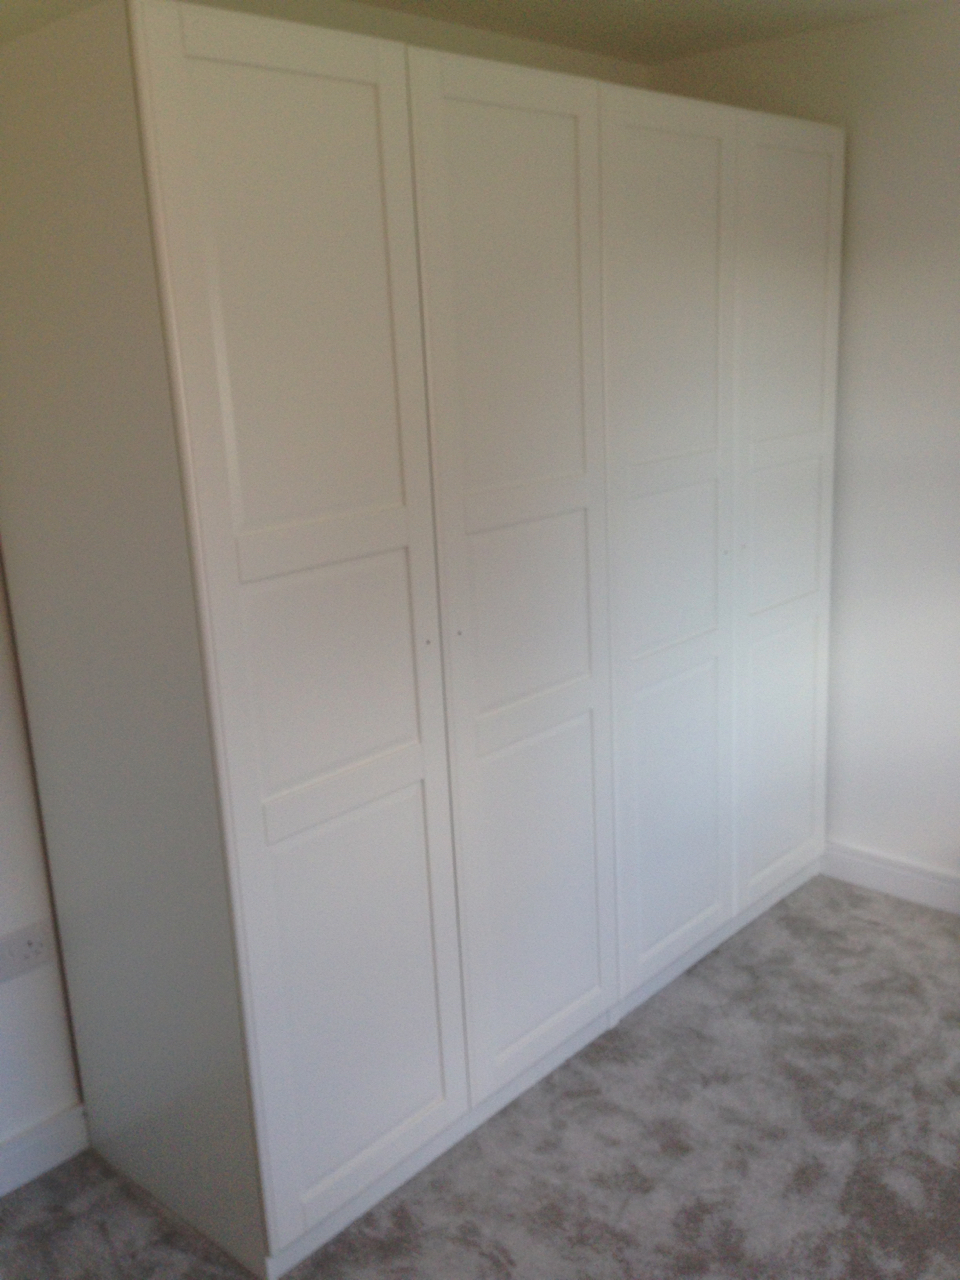 Ikea PAX hinged wardrobes assembled by www.norwichflatpack.co.uk